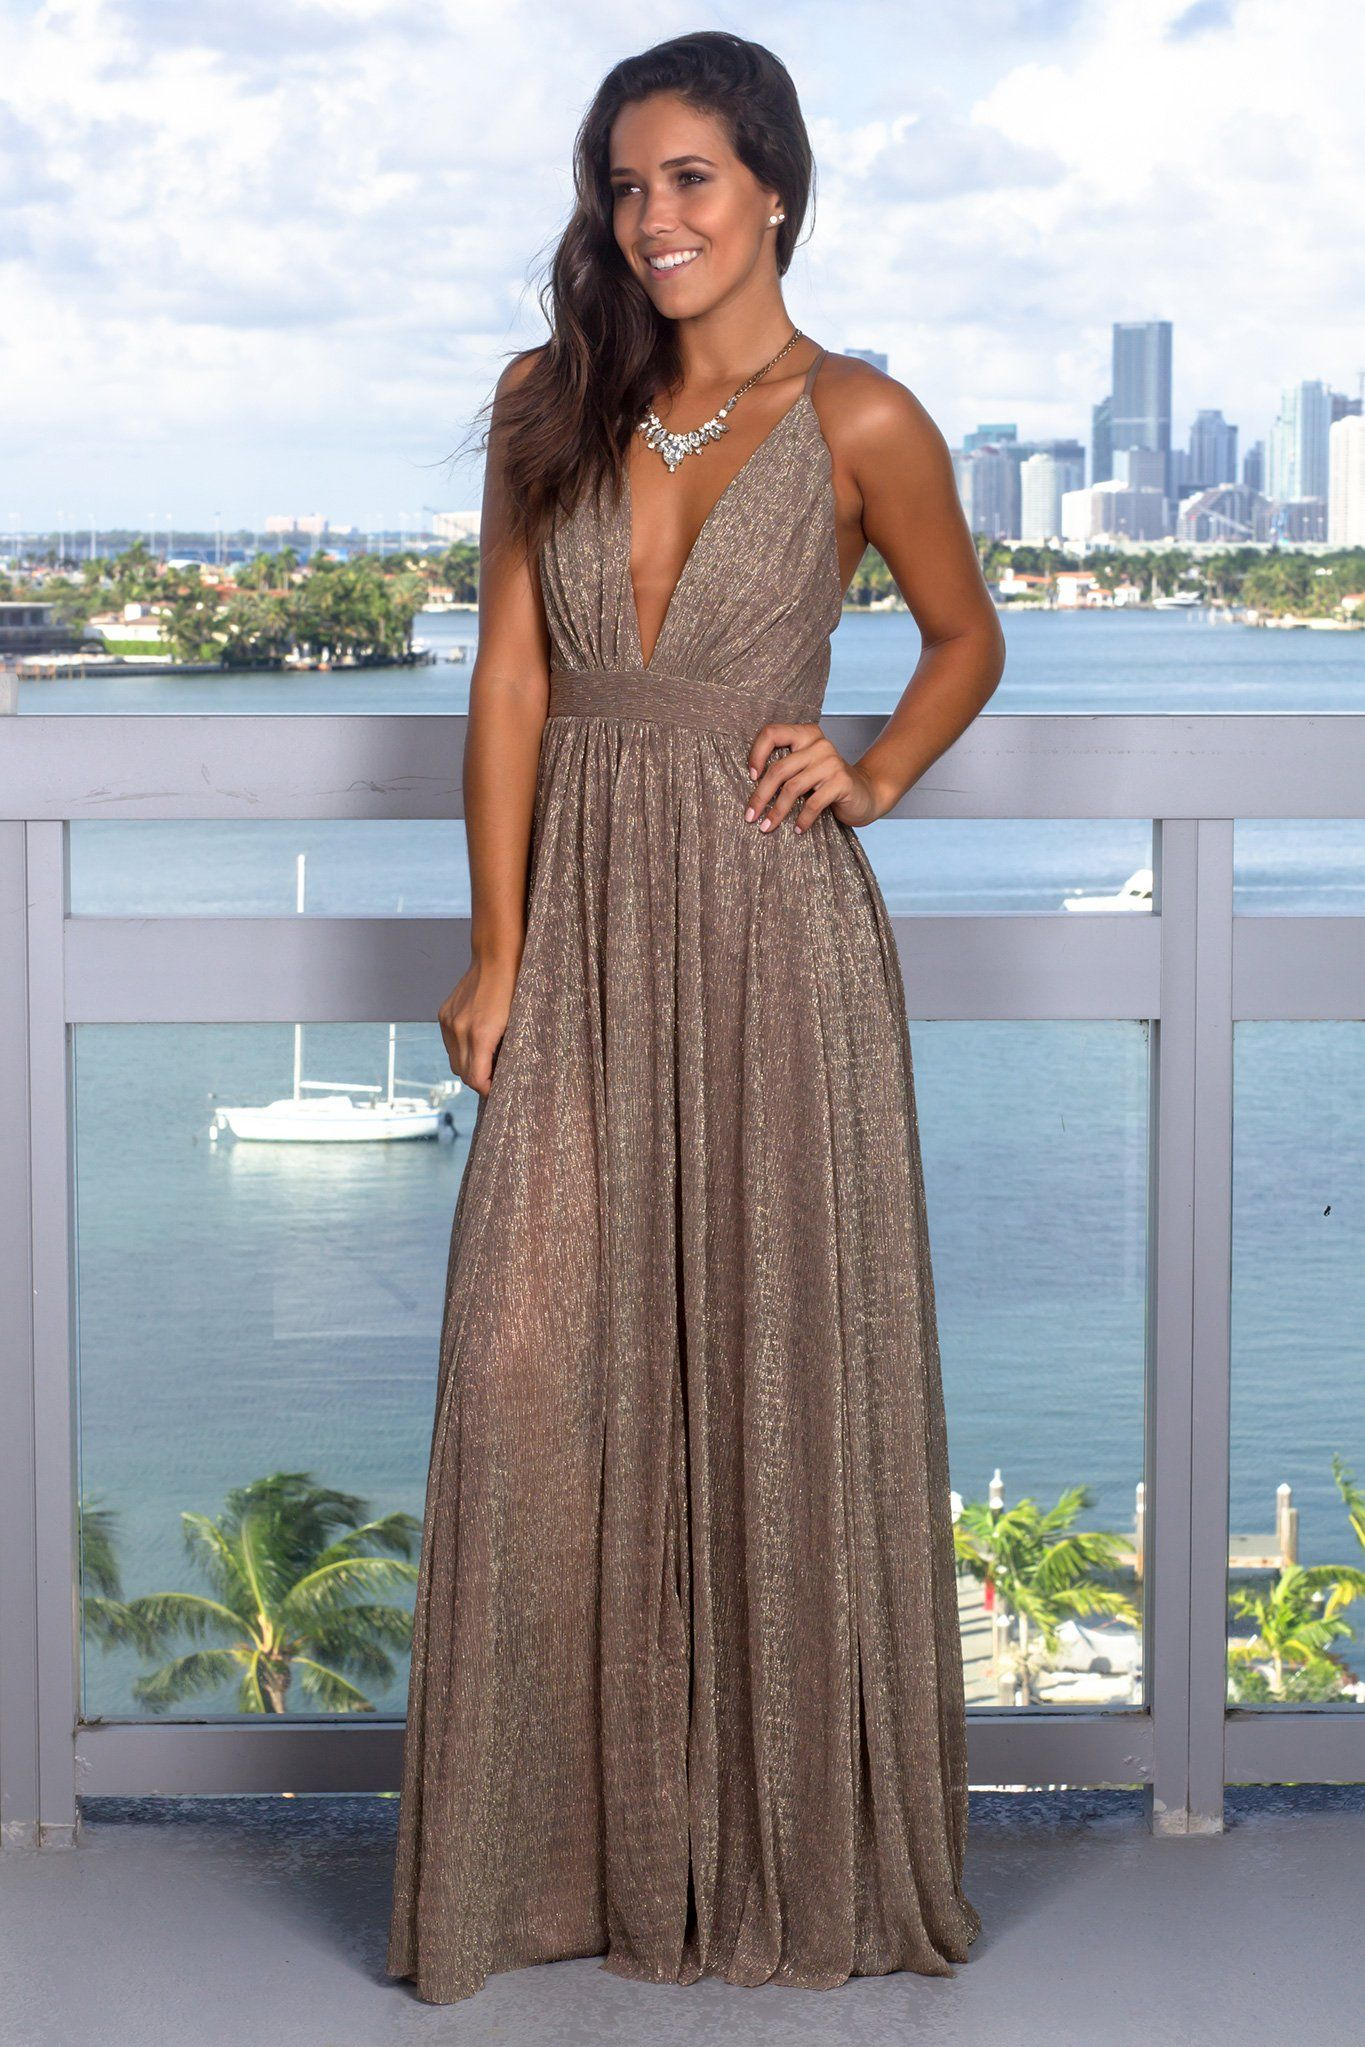 Bronze Maxi Dress With Shimmer Detail Gold Maxi Dress Maxi Dress Dresses [ 2047 x 1365 Pixel ]